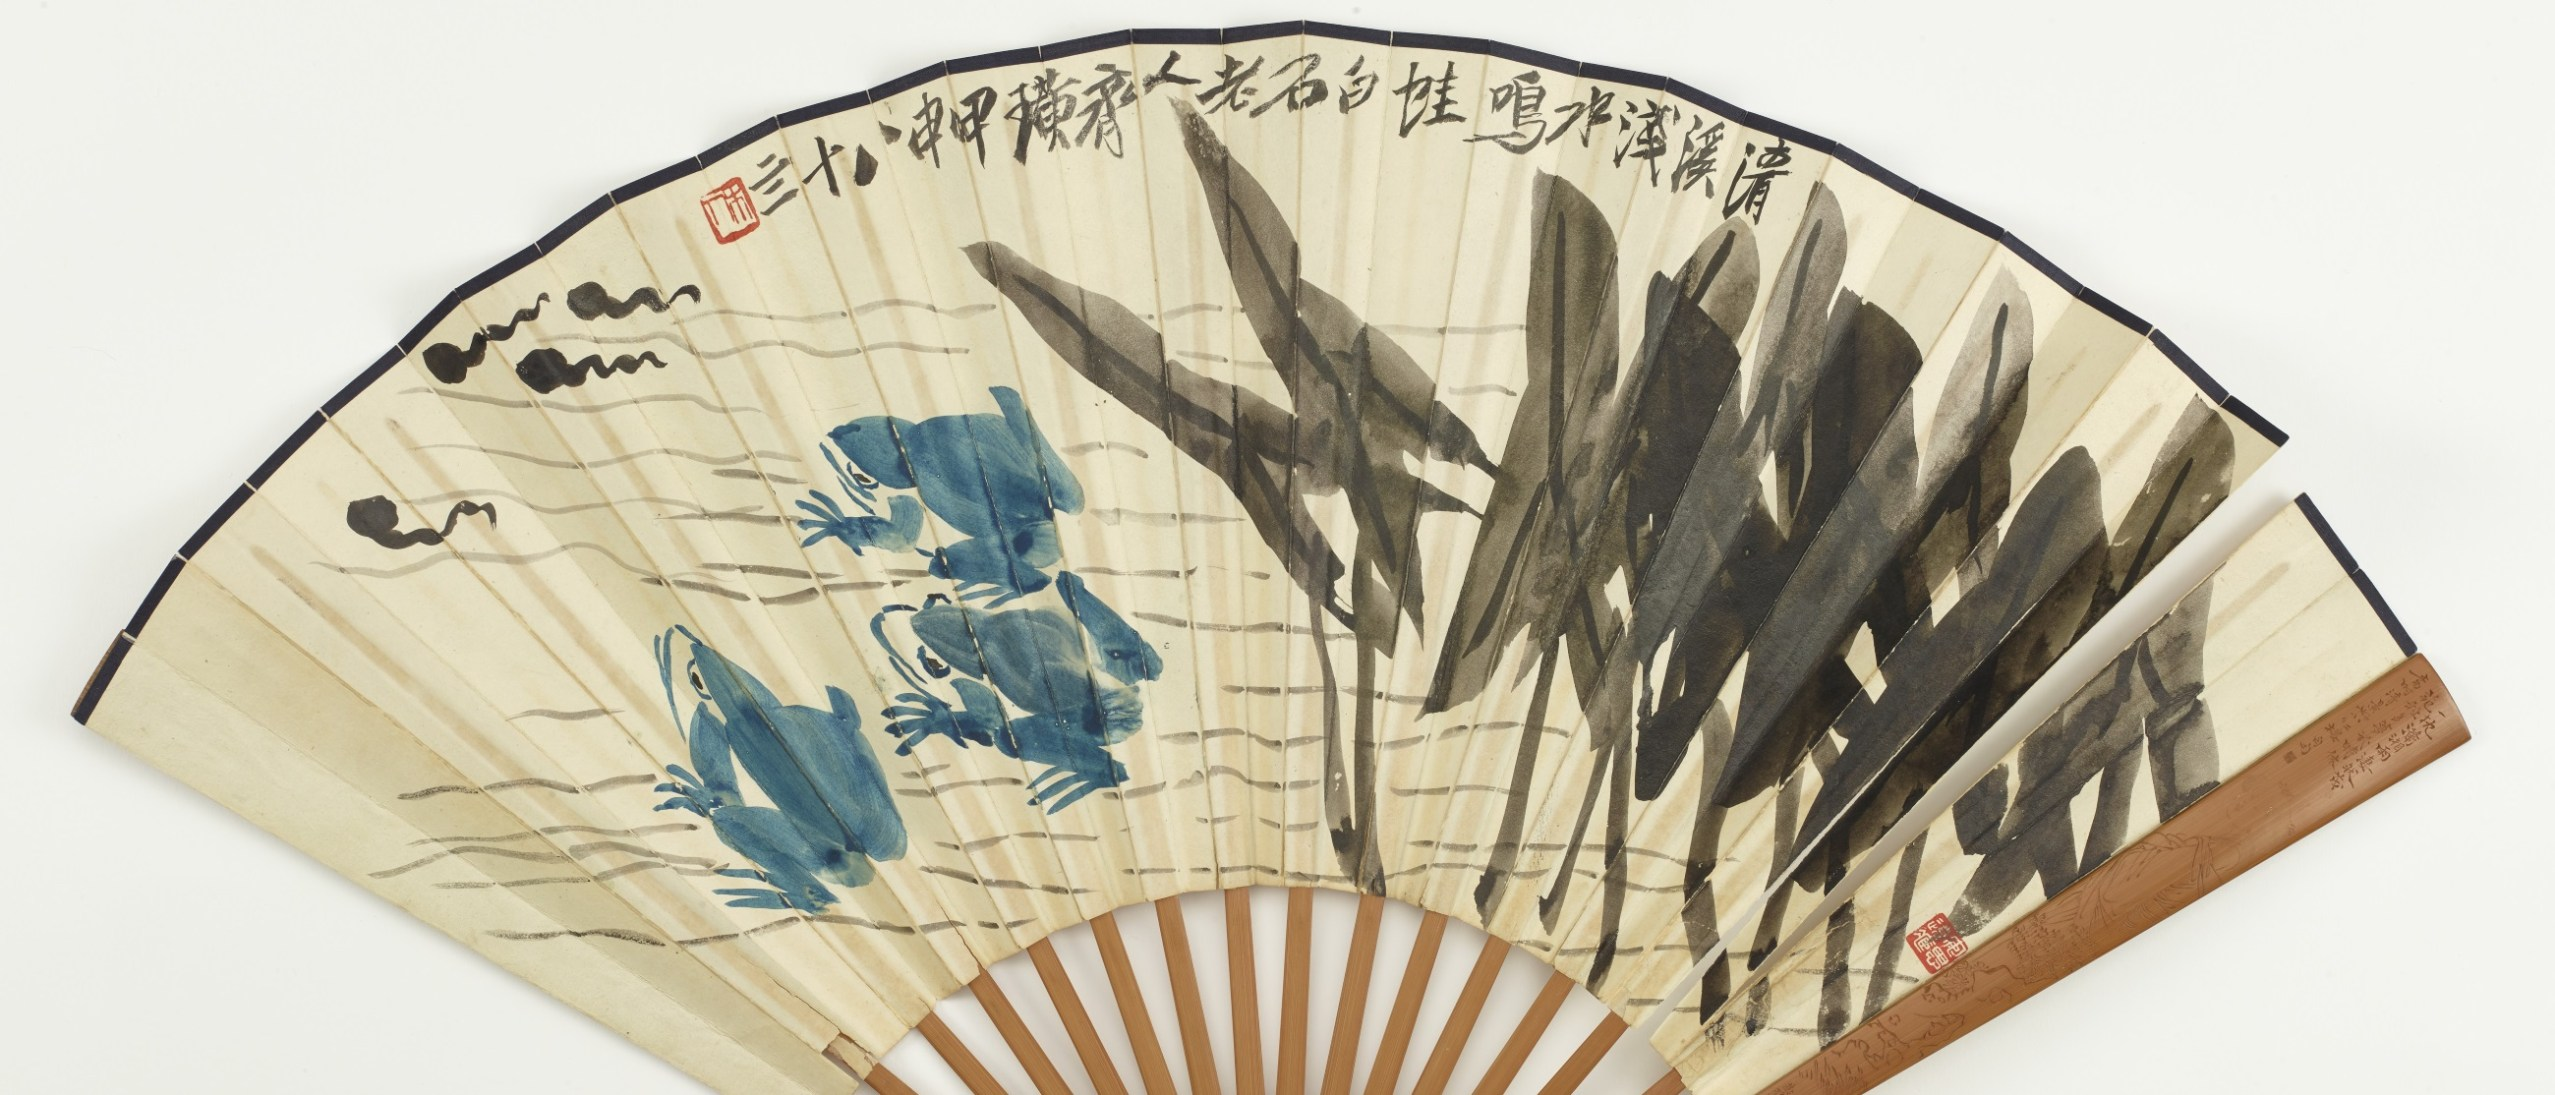 Detail photo of Frogs and Tadpoles; Qi Baishi (1864–1957); China, Modern period, 1944; Folding fan; ink and color on paper; Gift of Robert Hatfield Ellsworth; Freer Gallery of Art F2017.1